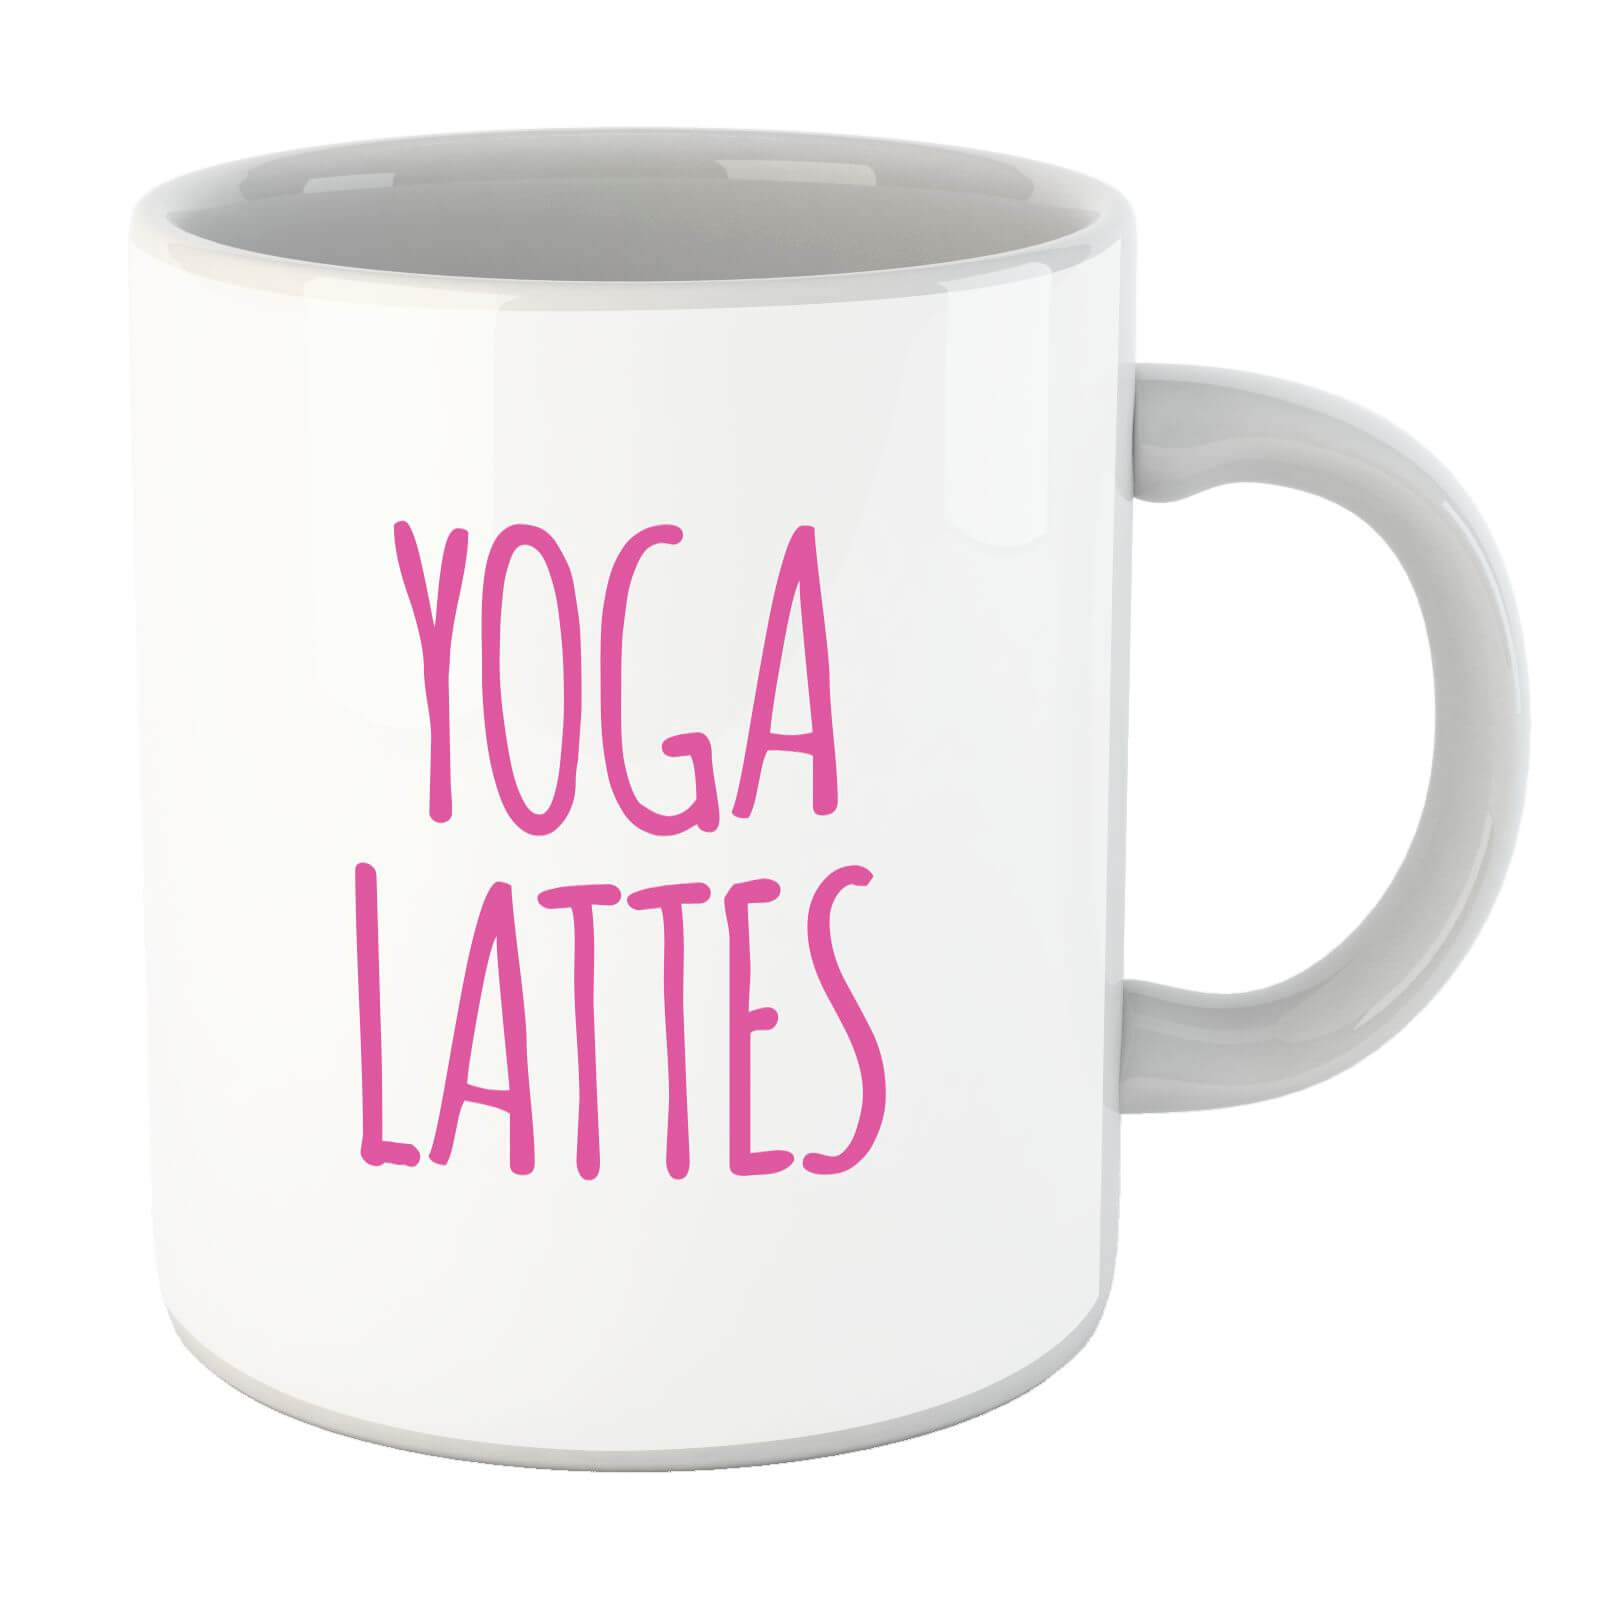 Yoga Lattes Mug